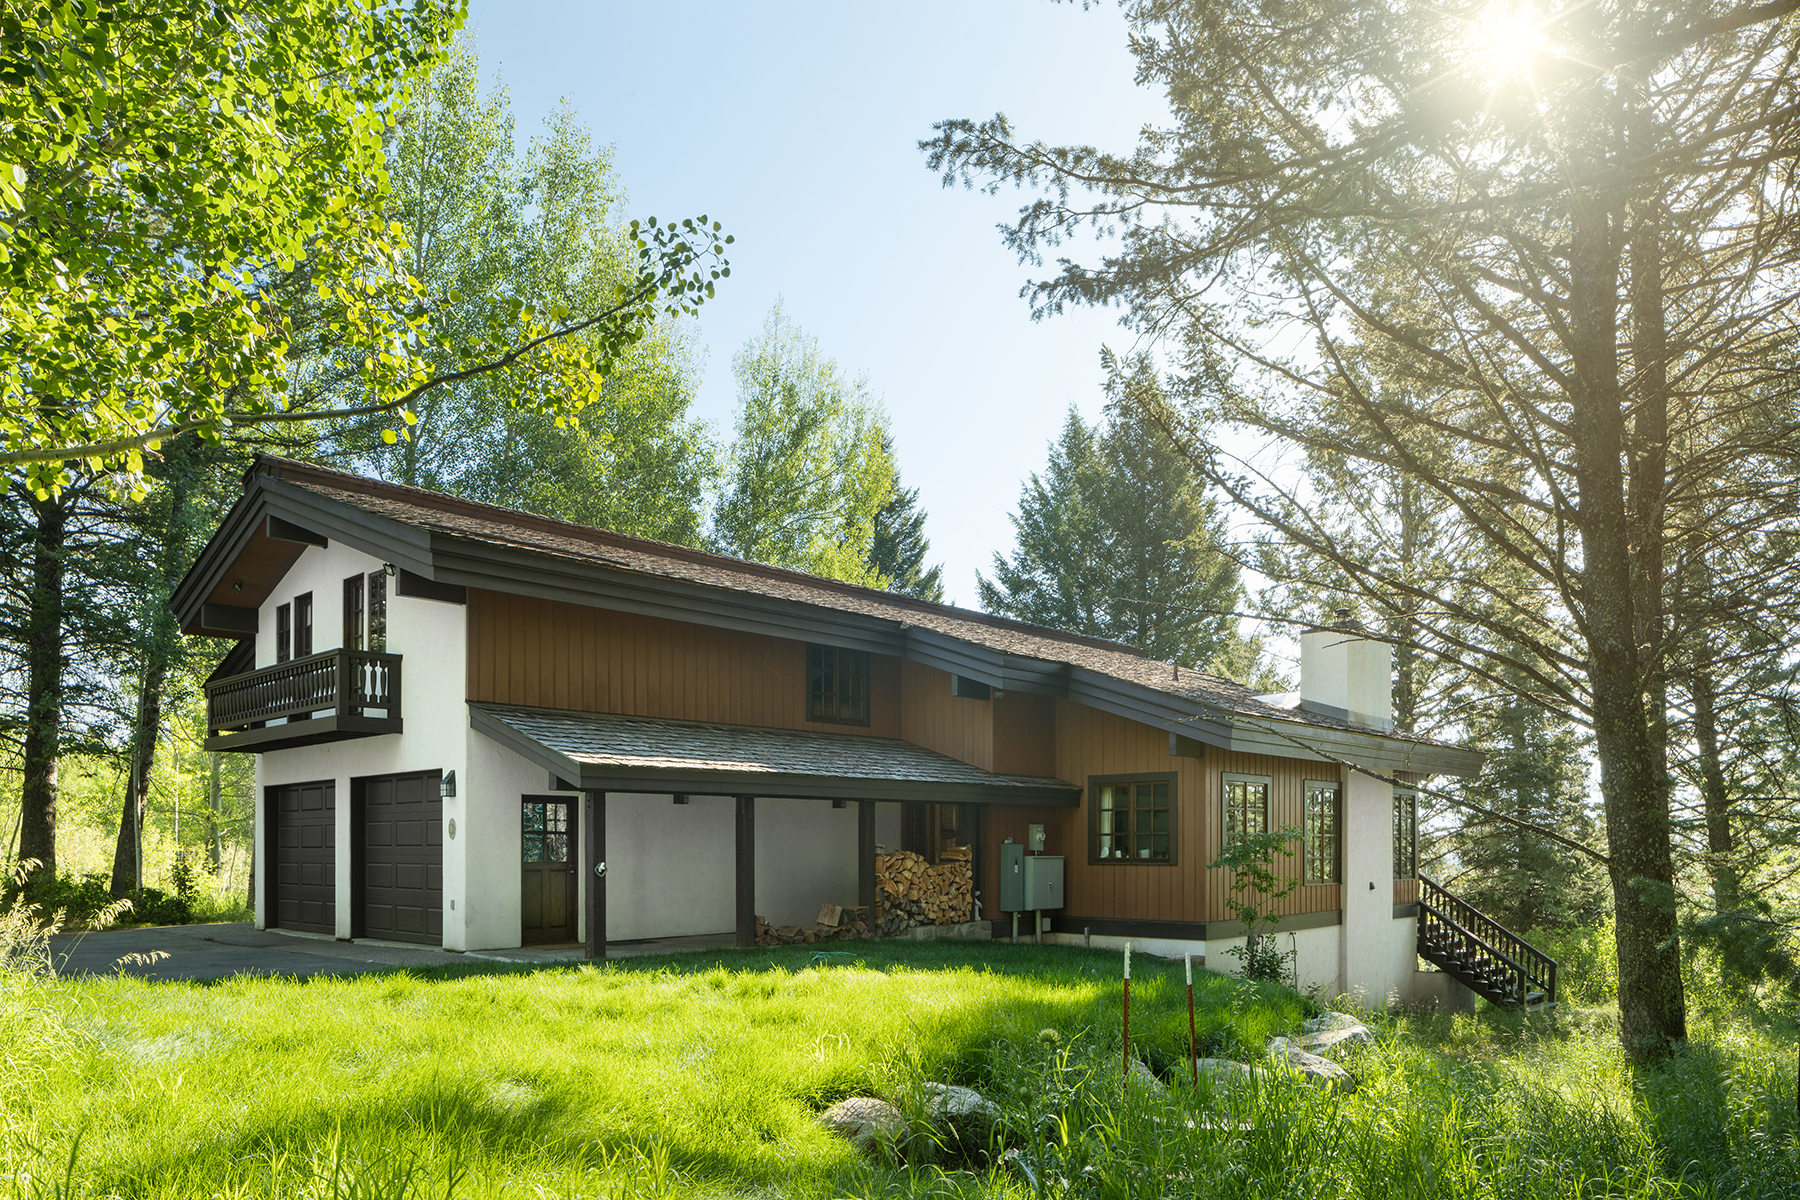 Single Family Homes のために 売買 アット High Mountain Retreat in Teton Village 6660 N Ellen Creek Rd., Teton Village, ワイオミング 83025 アメリカ